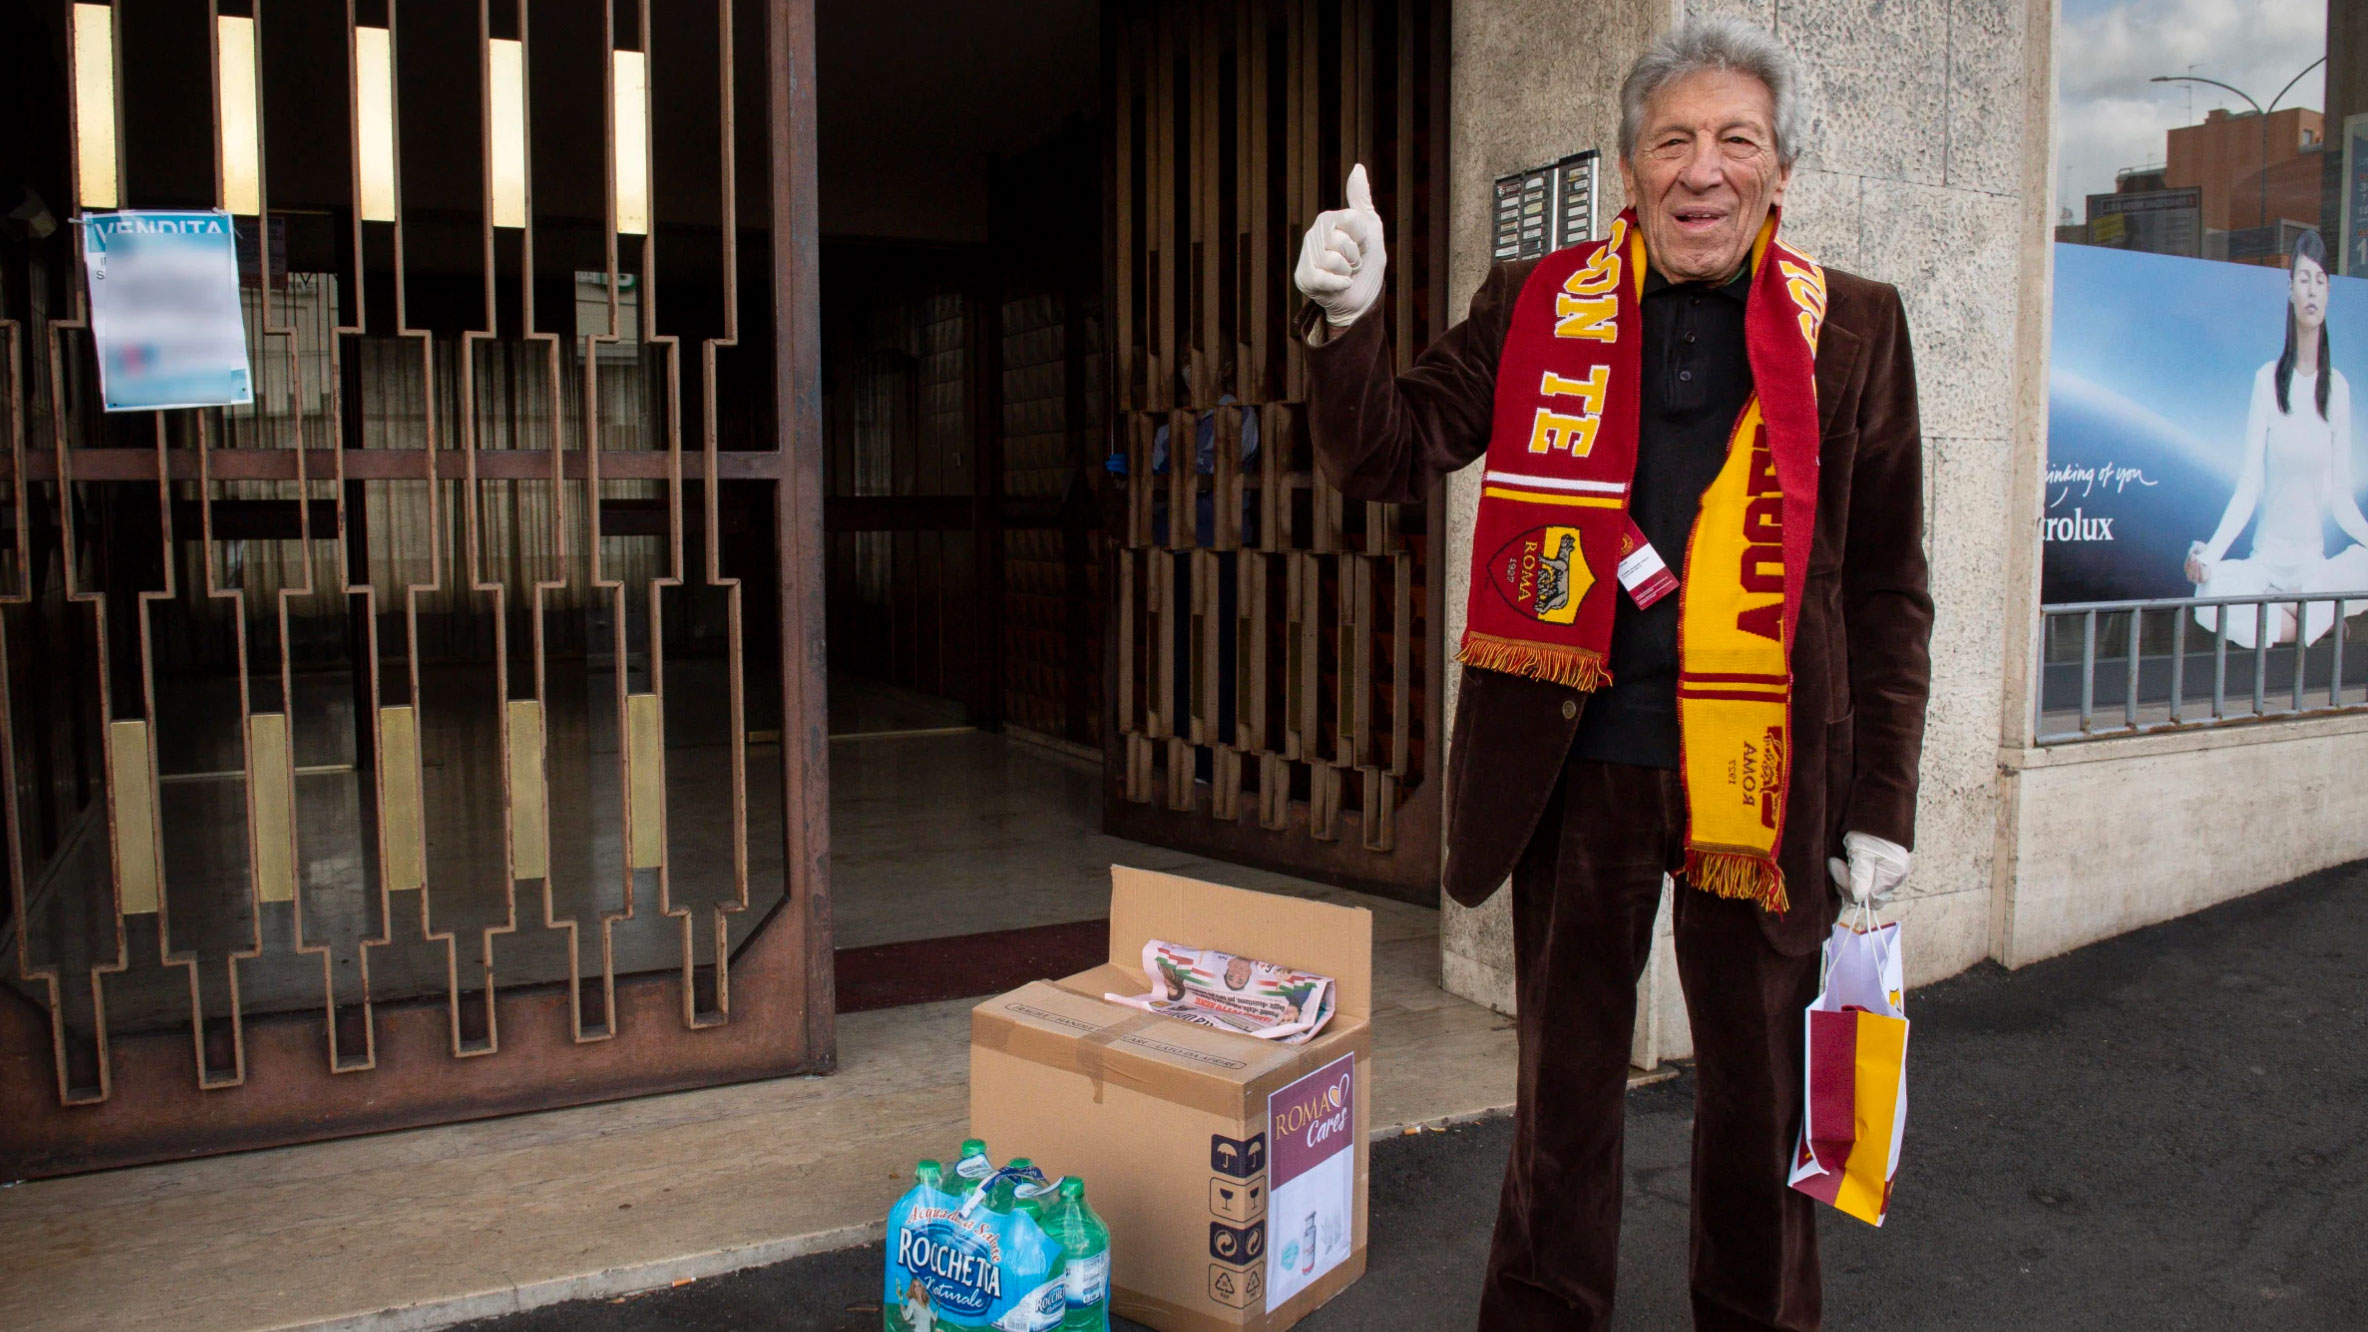 Italian soccer team delivers care packages to its elderly fans during coronavirus lockdown